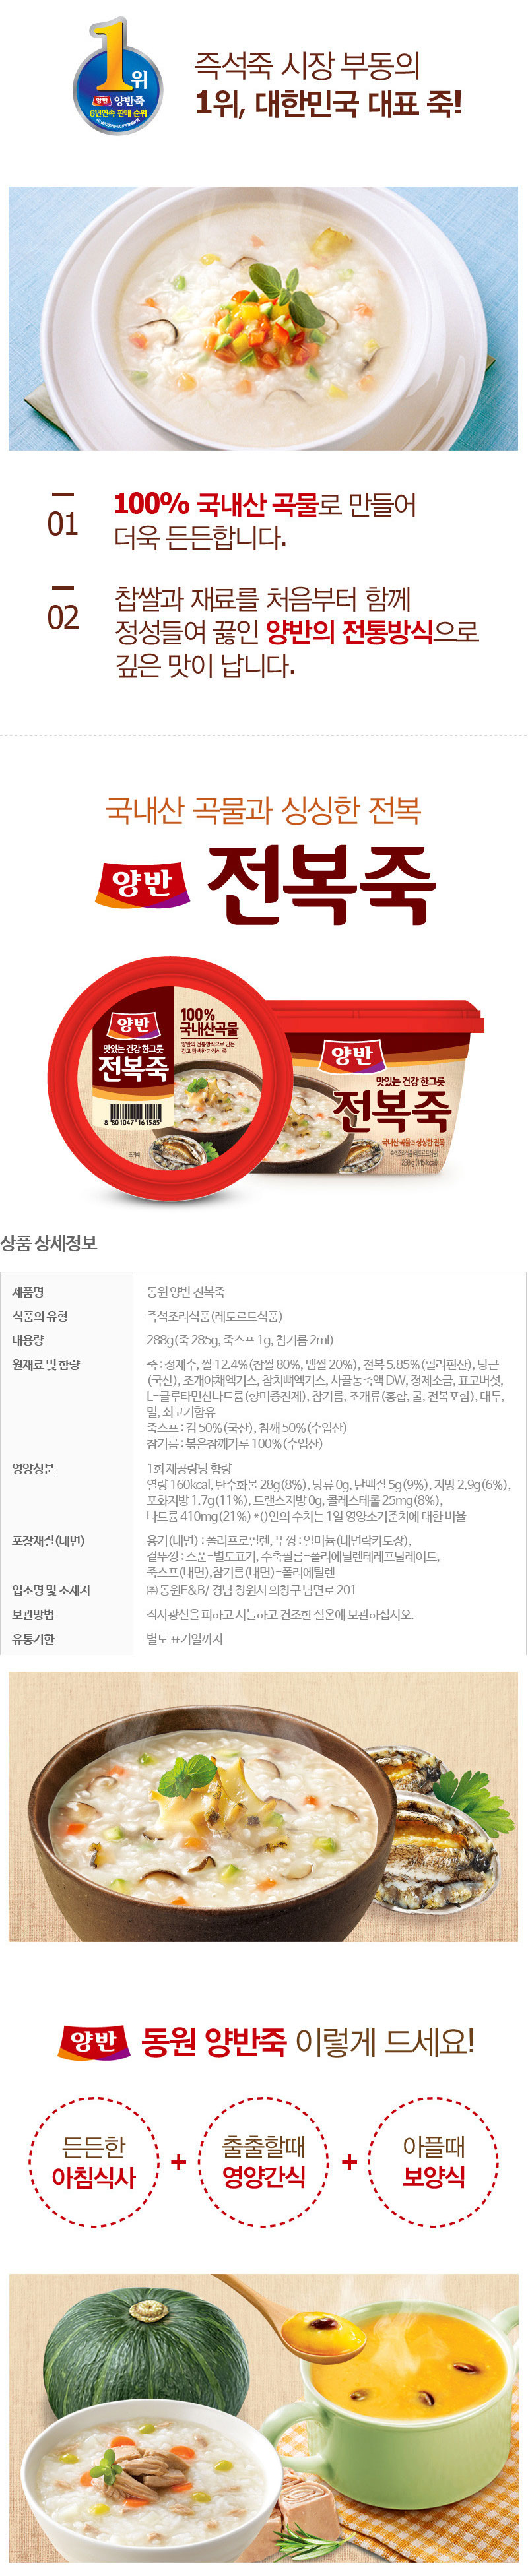 Rice Porridge with Abalone 10.16oz(288g)